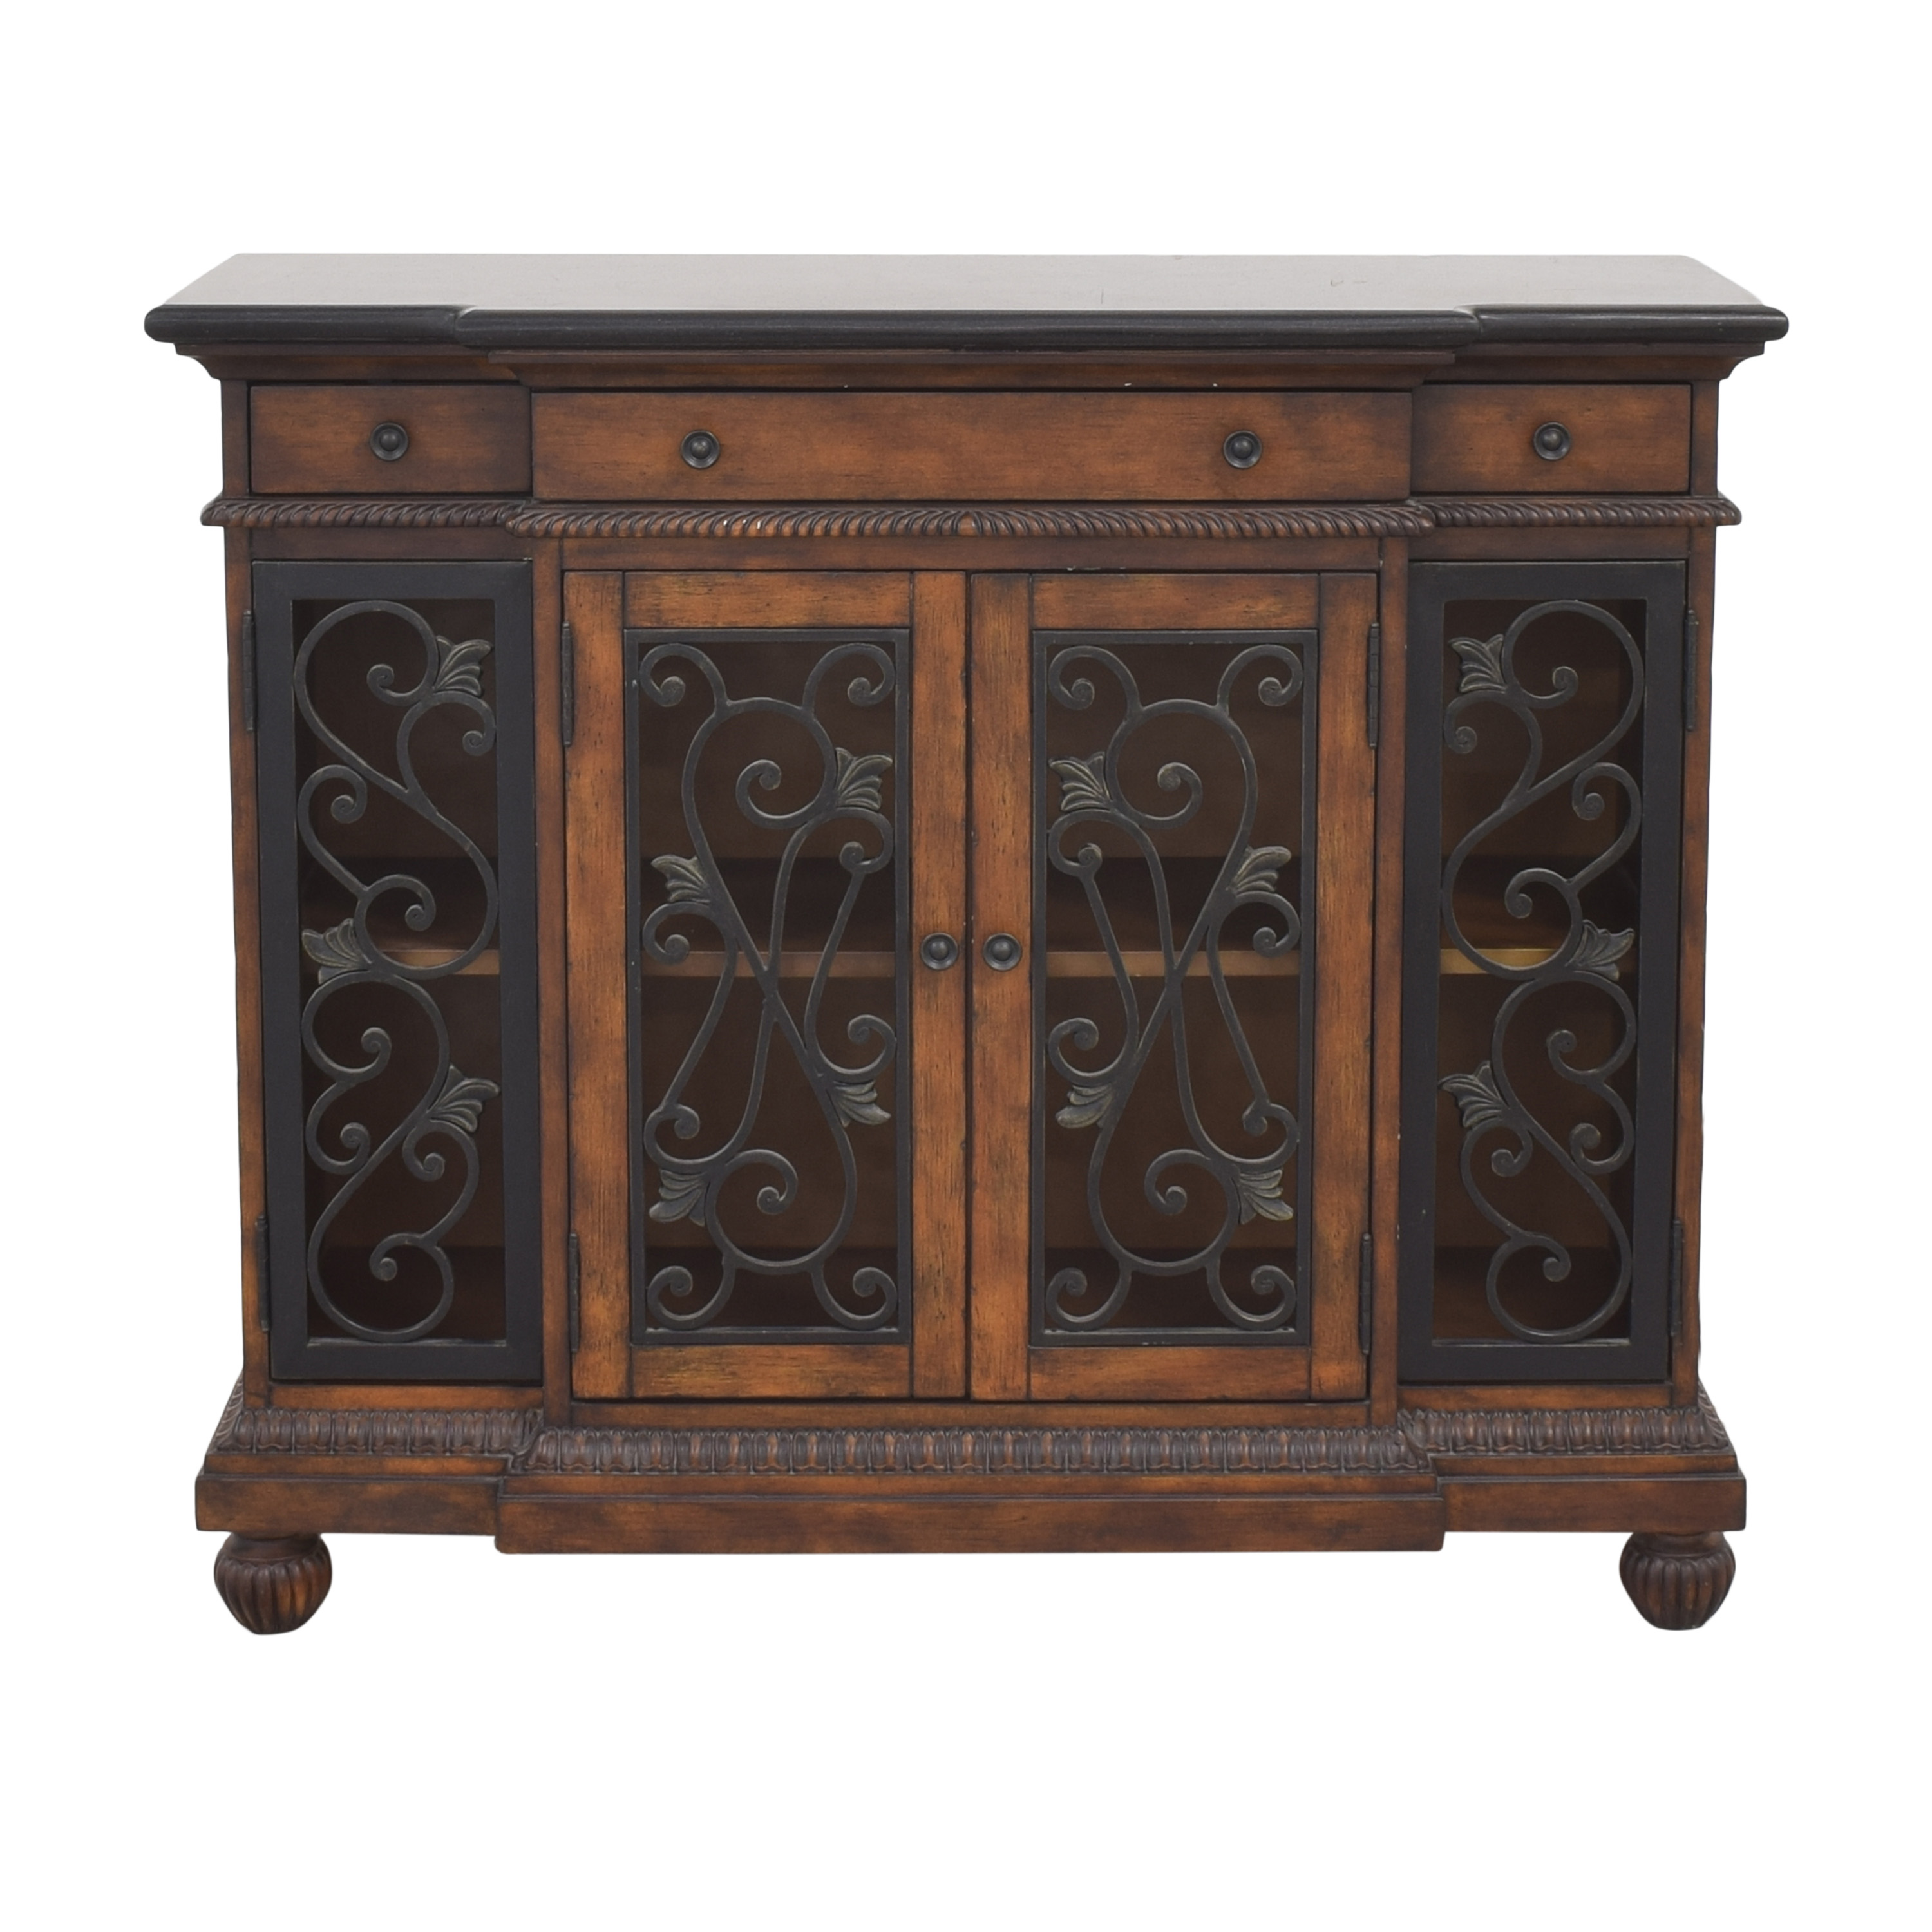 Neiman Marcus Neiman Marcus Console Cabinet Cabinets & Sideboards